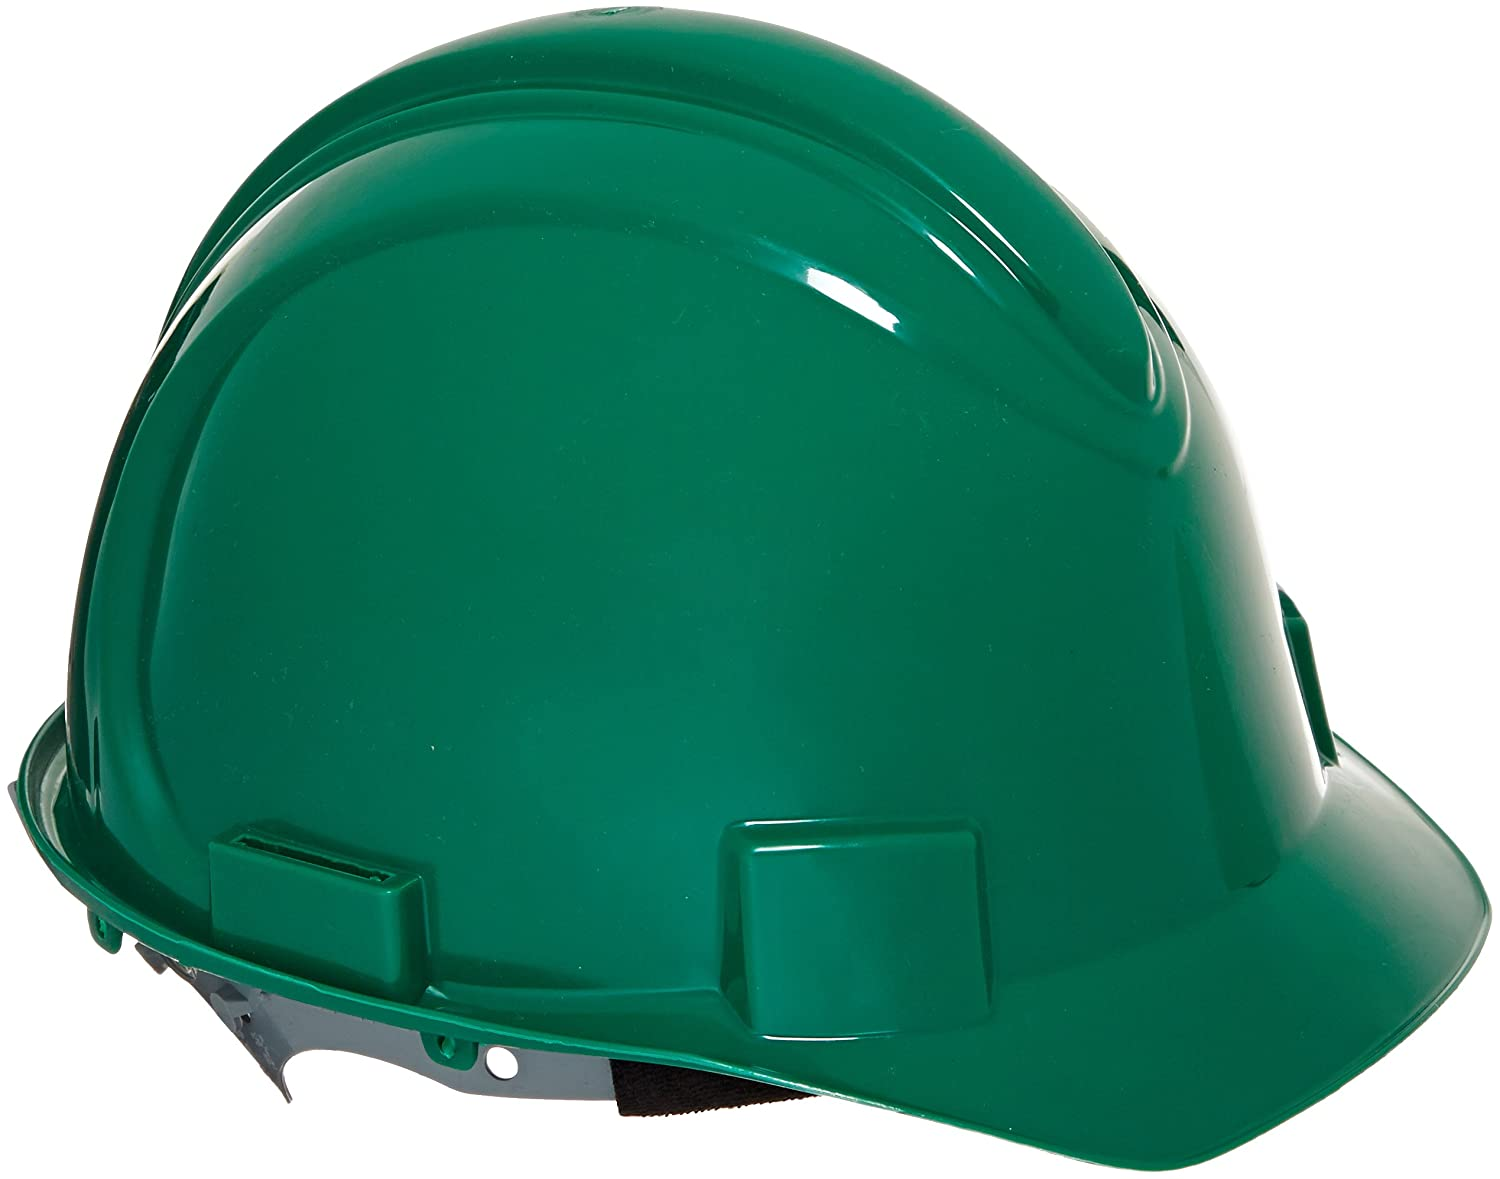 Pack of 12 Green Jackson Safety 20413 Charger High Density Polyethylene Hard Hat with 4 Point Pinlock Suspension